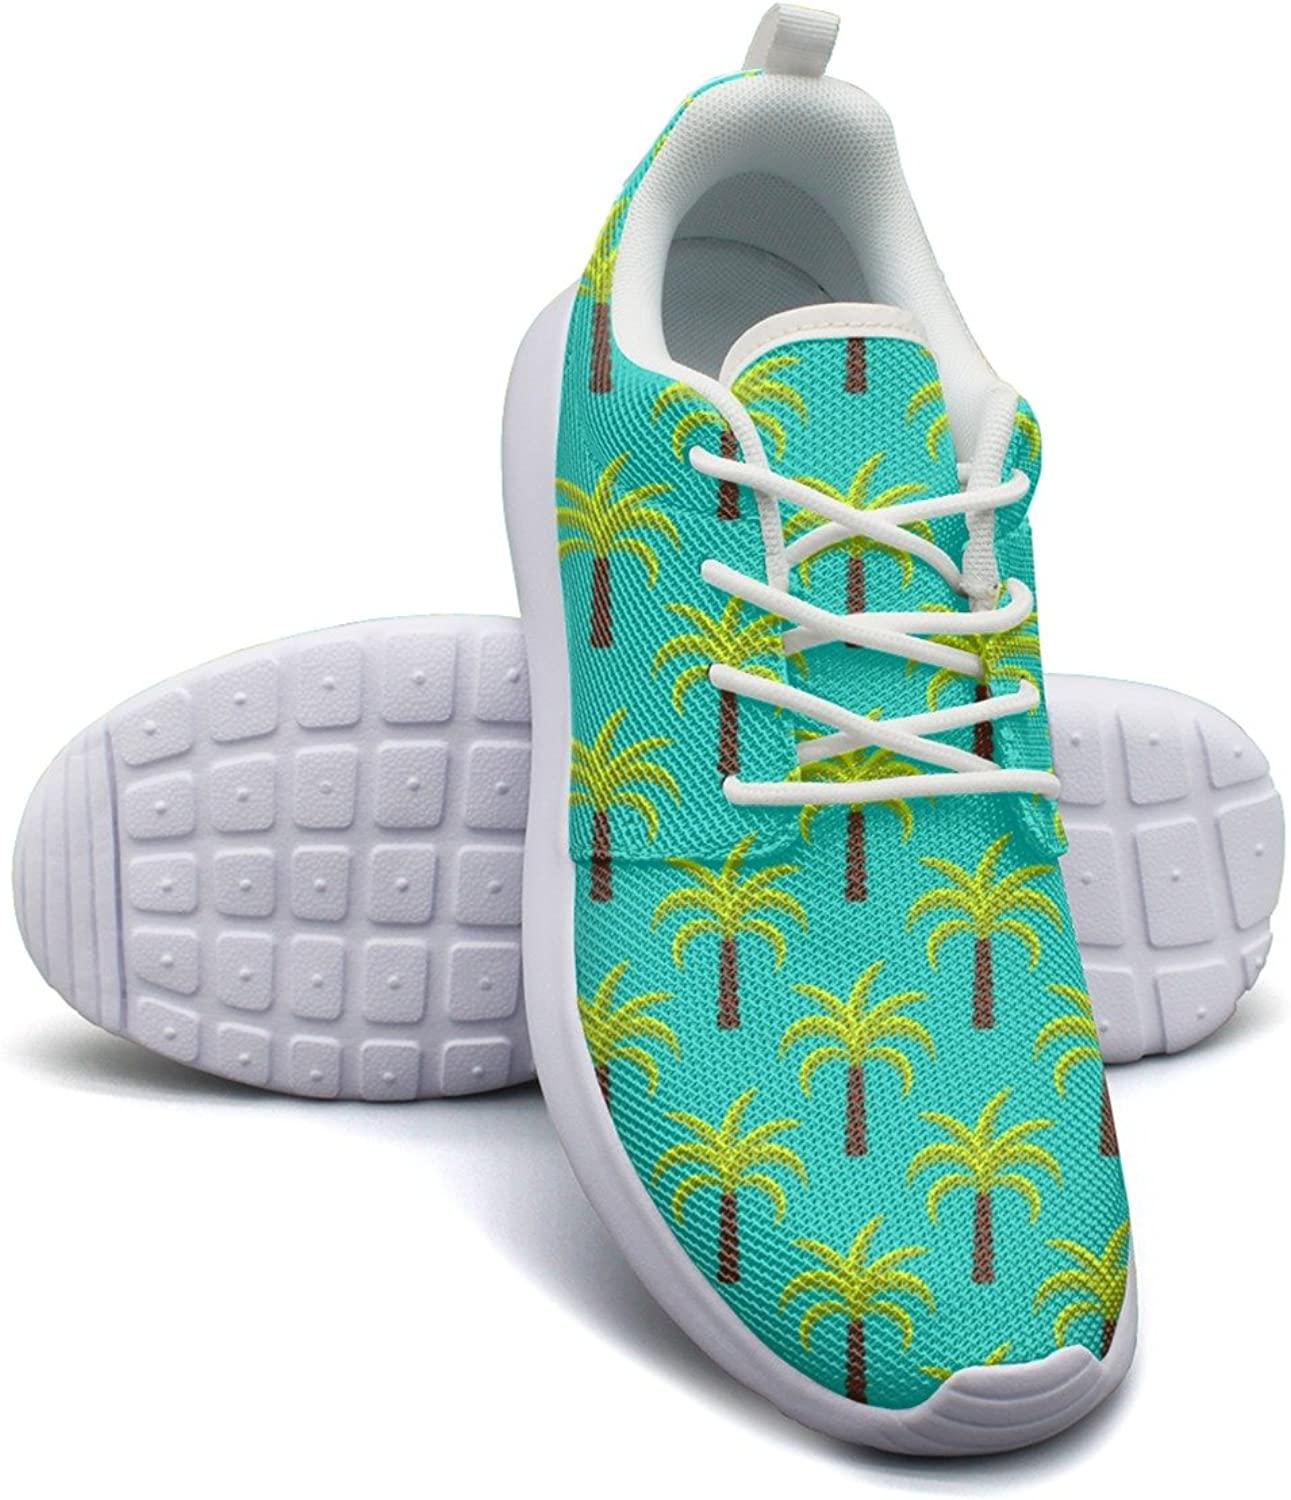 Green Tropic Palm Trees Women's Fashion Tennis shoes Retro Mesh Lightweight Running Sneakers